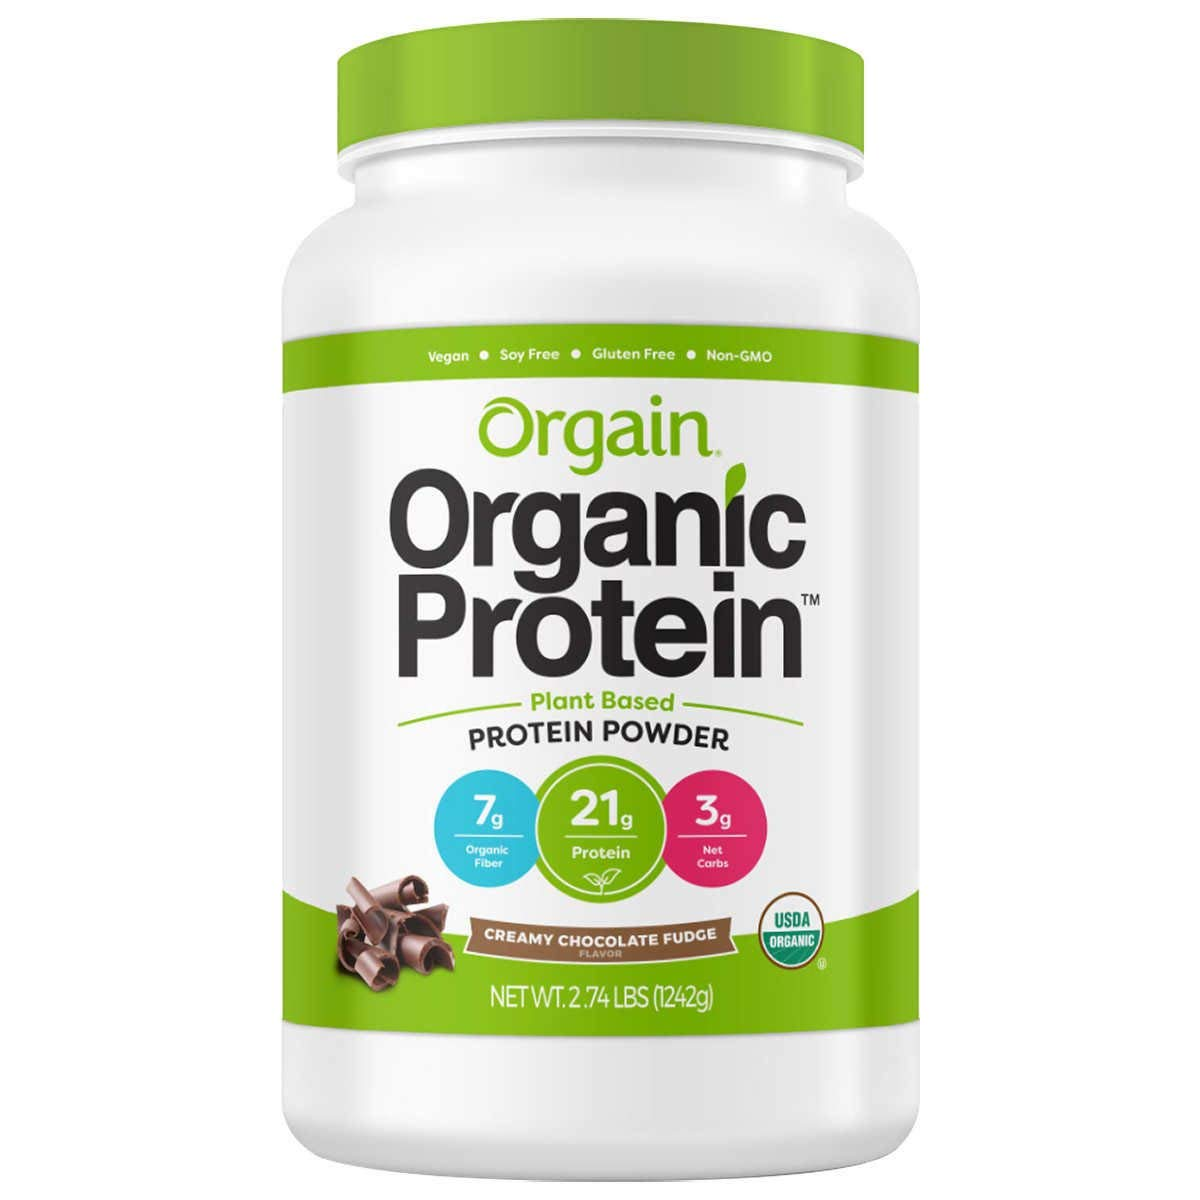 Orgain Organic Plant Based Protein Powder, Vegan, Gluten Free, Kosher, Non-GMO (2.74 lb, Chocolate Fudge)